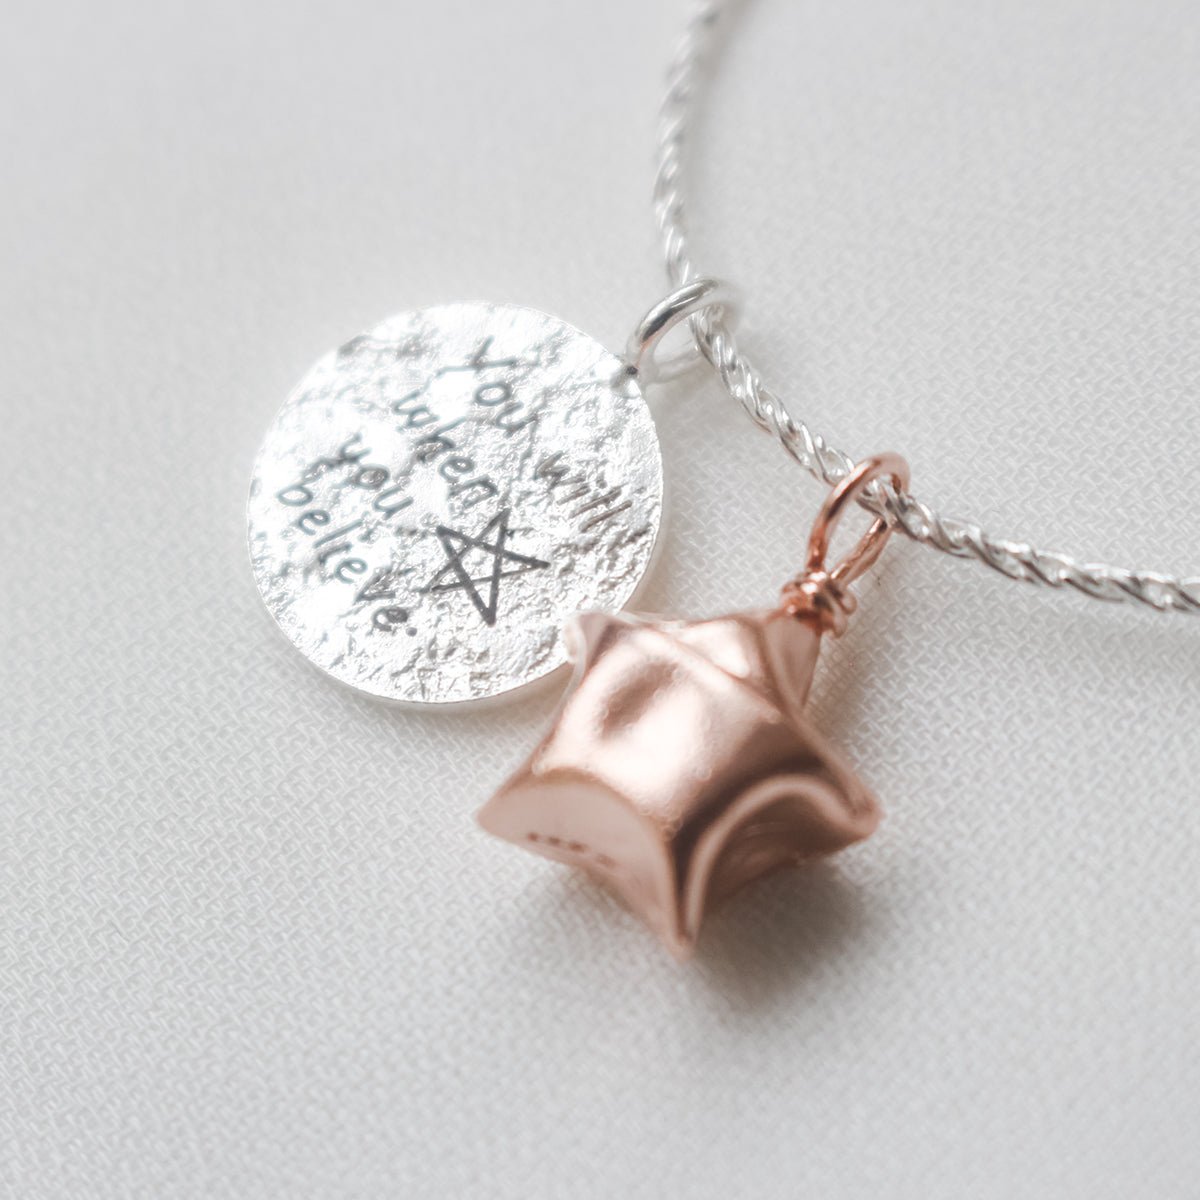 Inspirational Lucky Star Necklace - You Will When You Believe